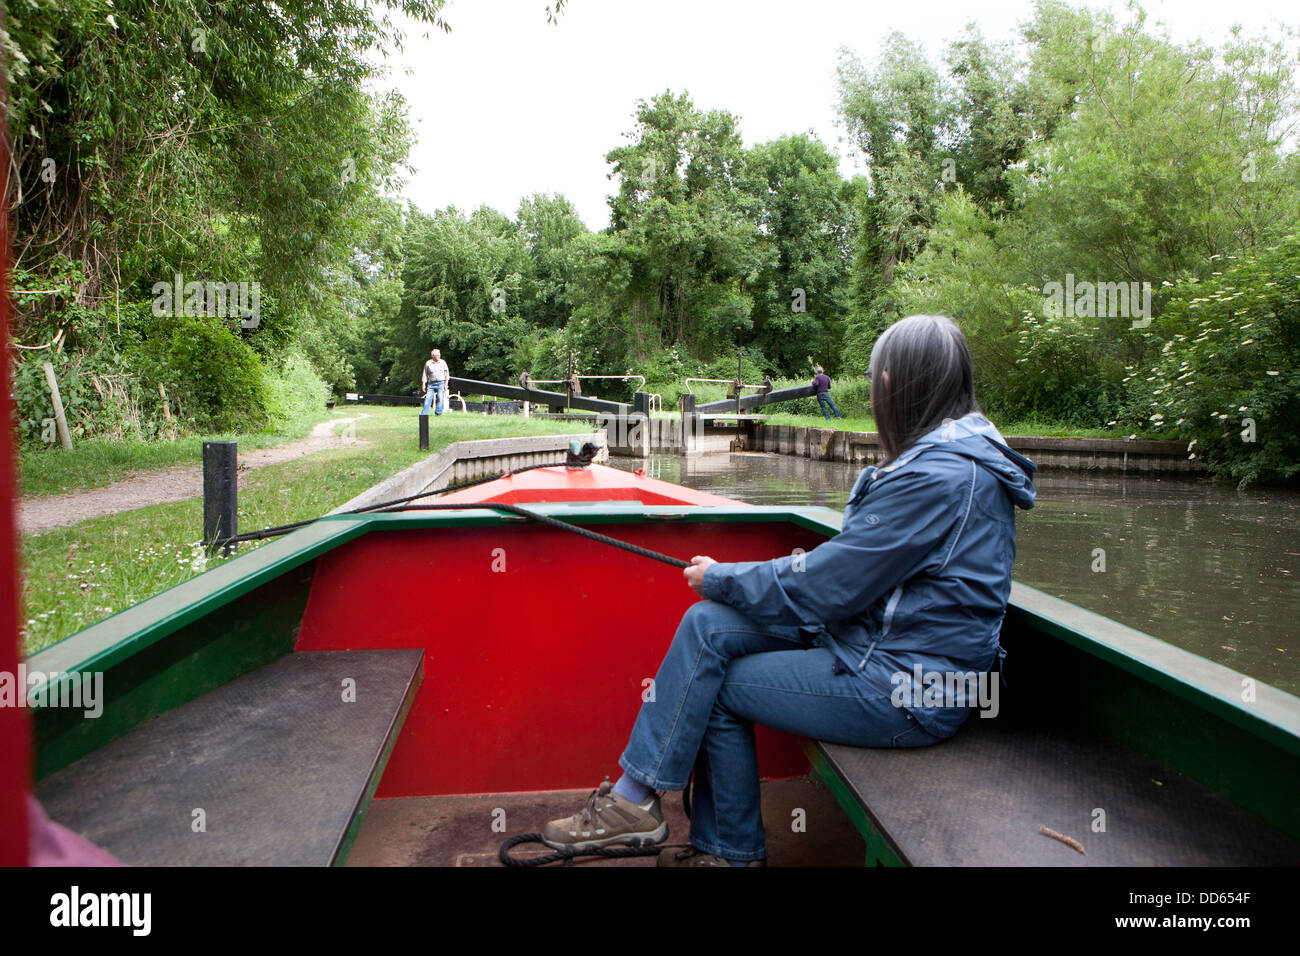 A woman holding a rope securing a narrow boat (Barge) whilst a Lock is opened in the distance. - Stock Image